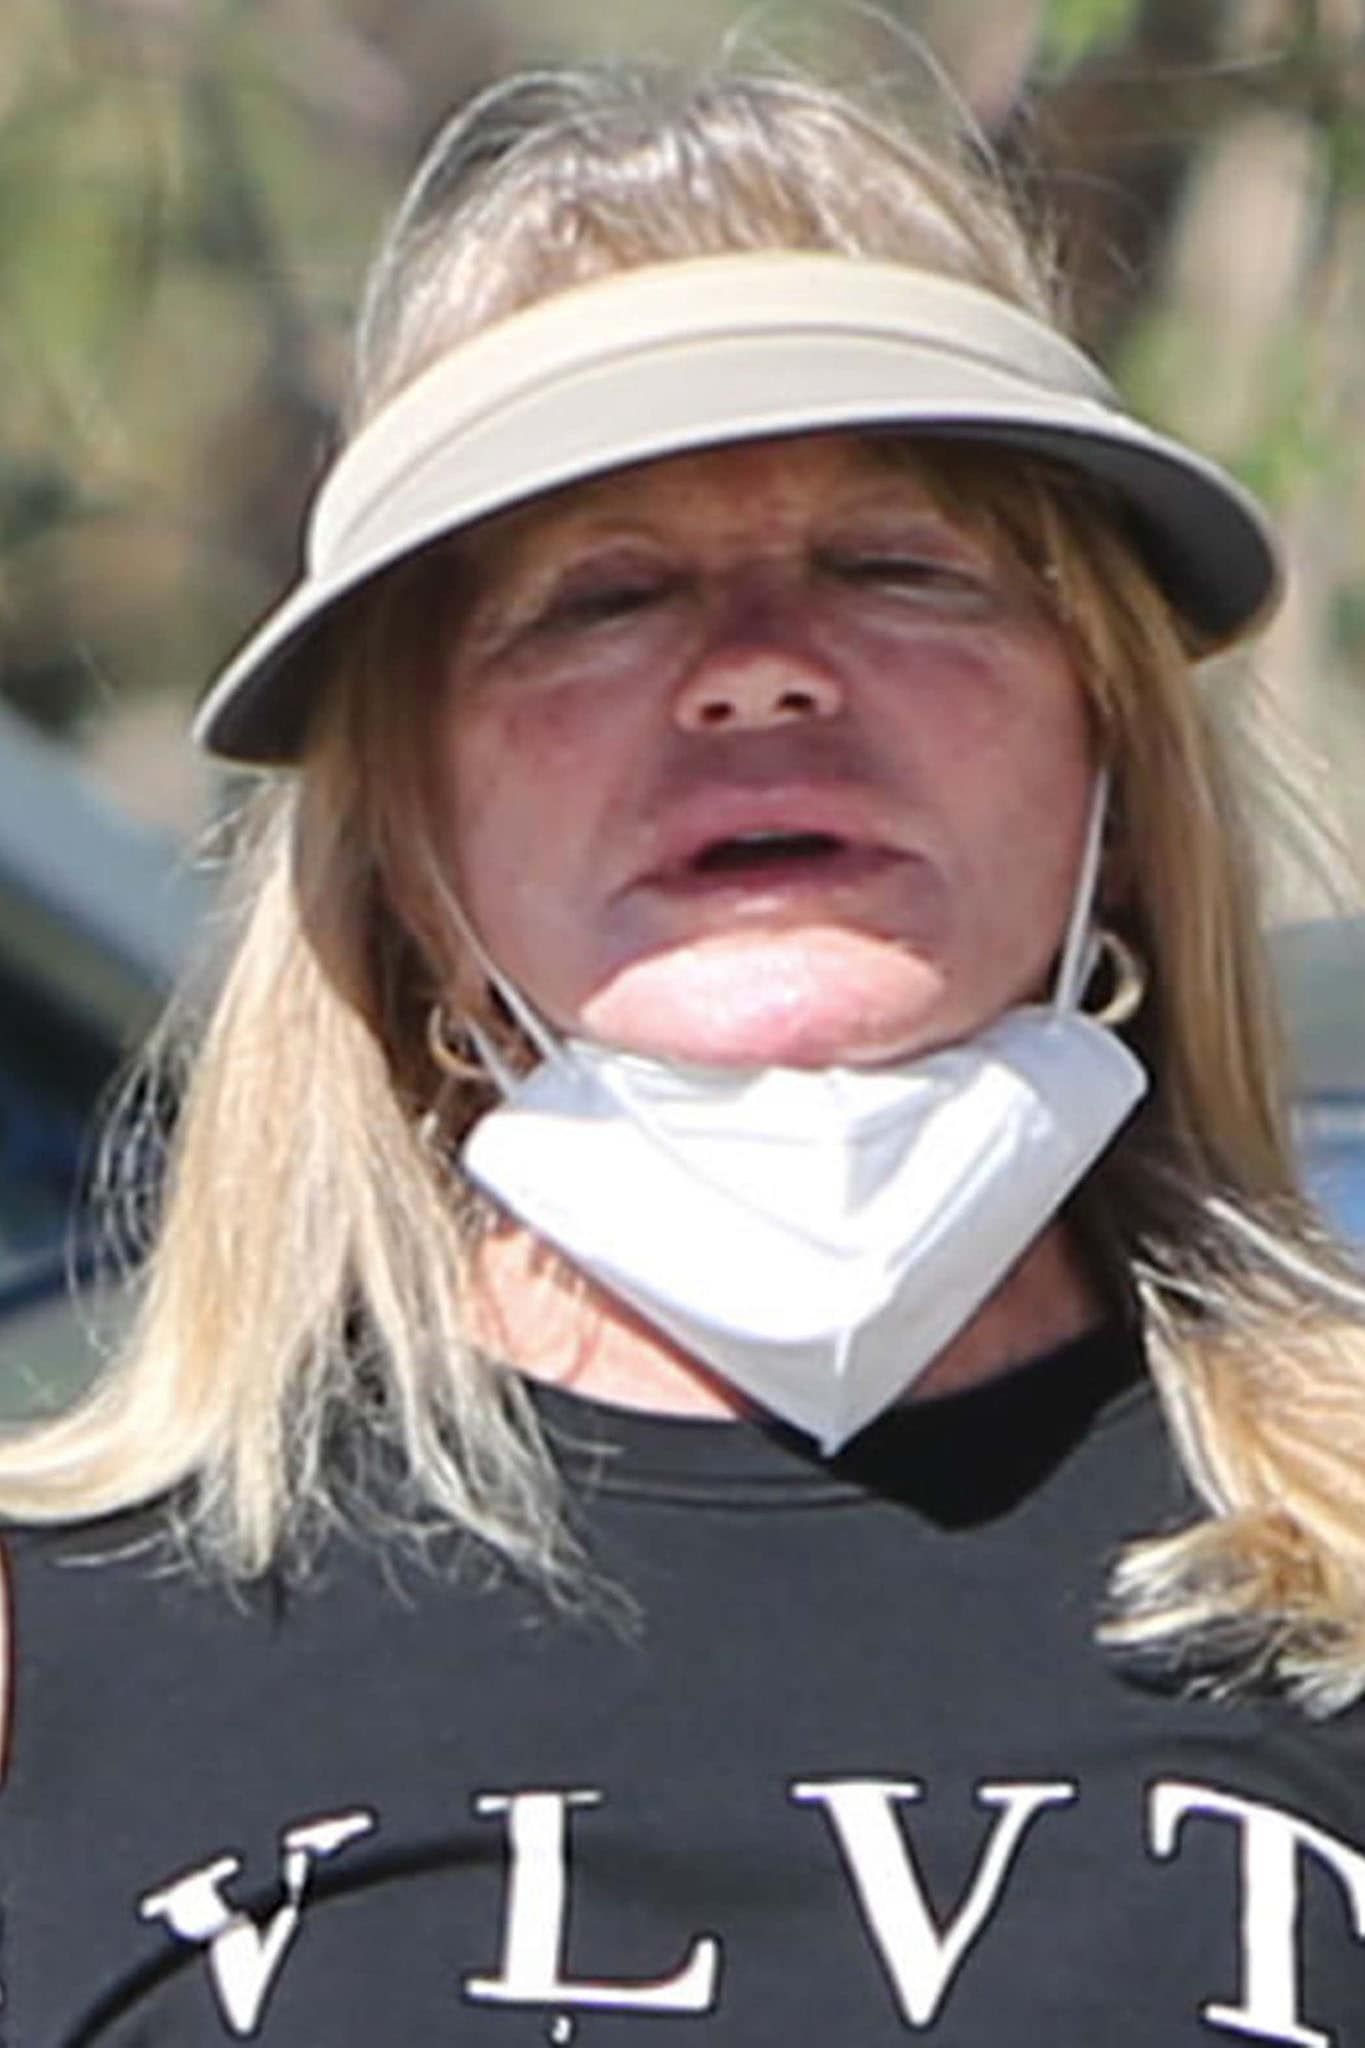 Goldie Hawn looks unrecognizable without makeup while out hiking in Los Angeles